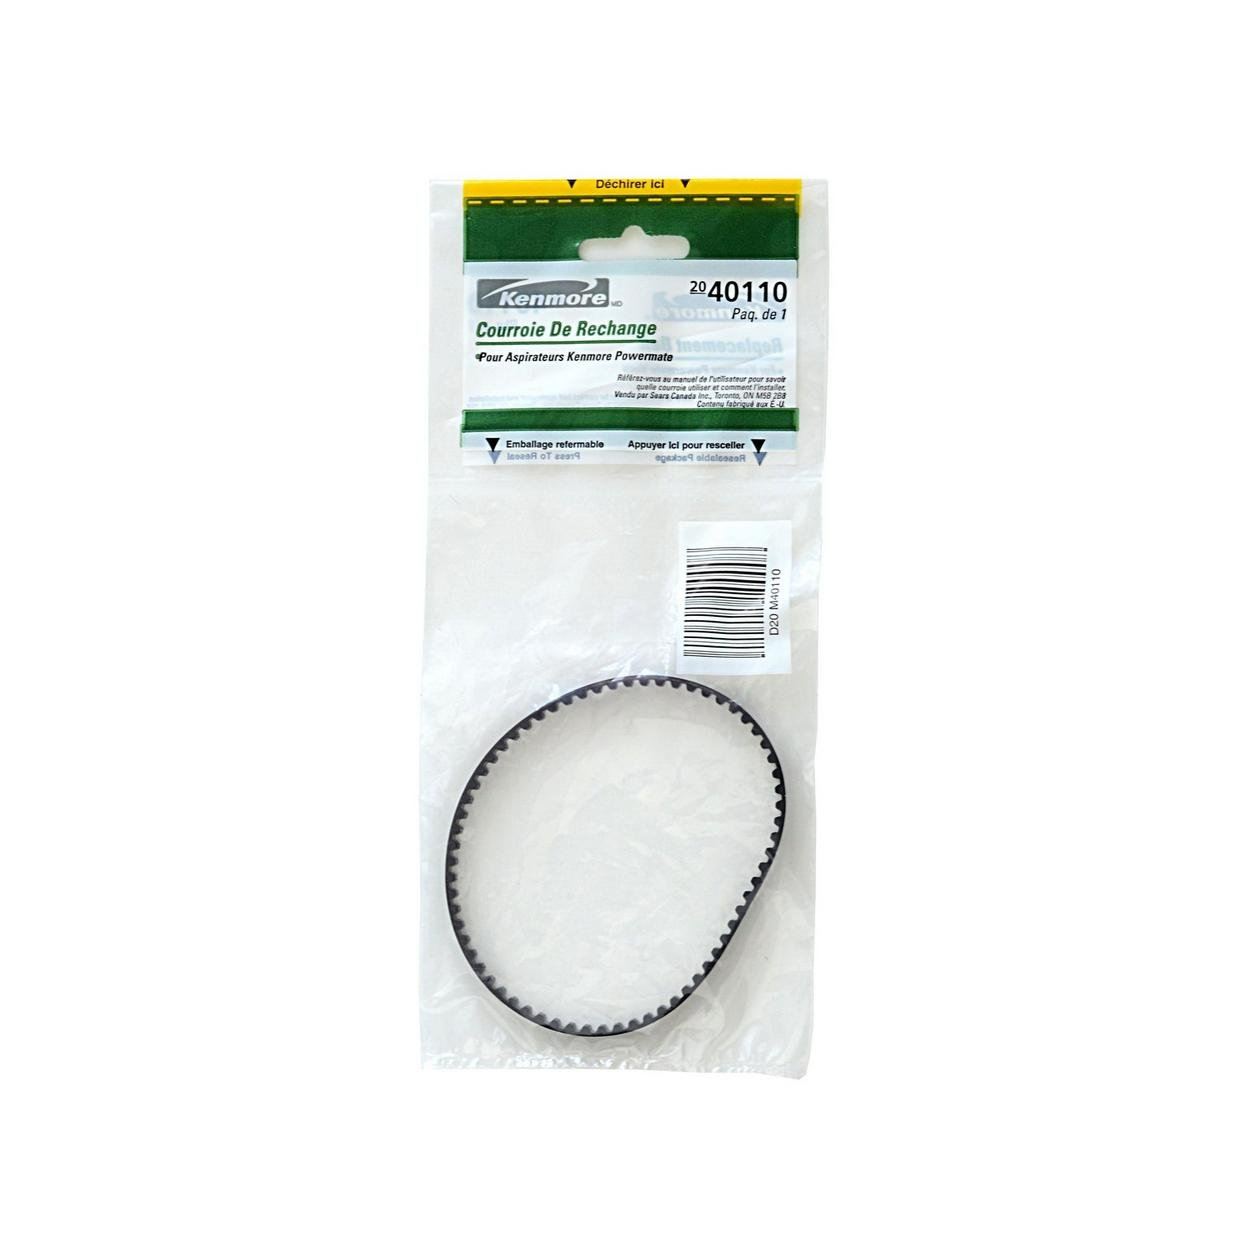 Replacement Belt for Kenmore Powermate Vacuums (20-40110)